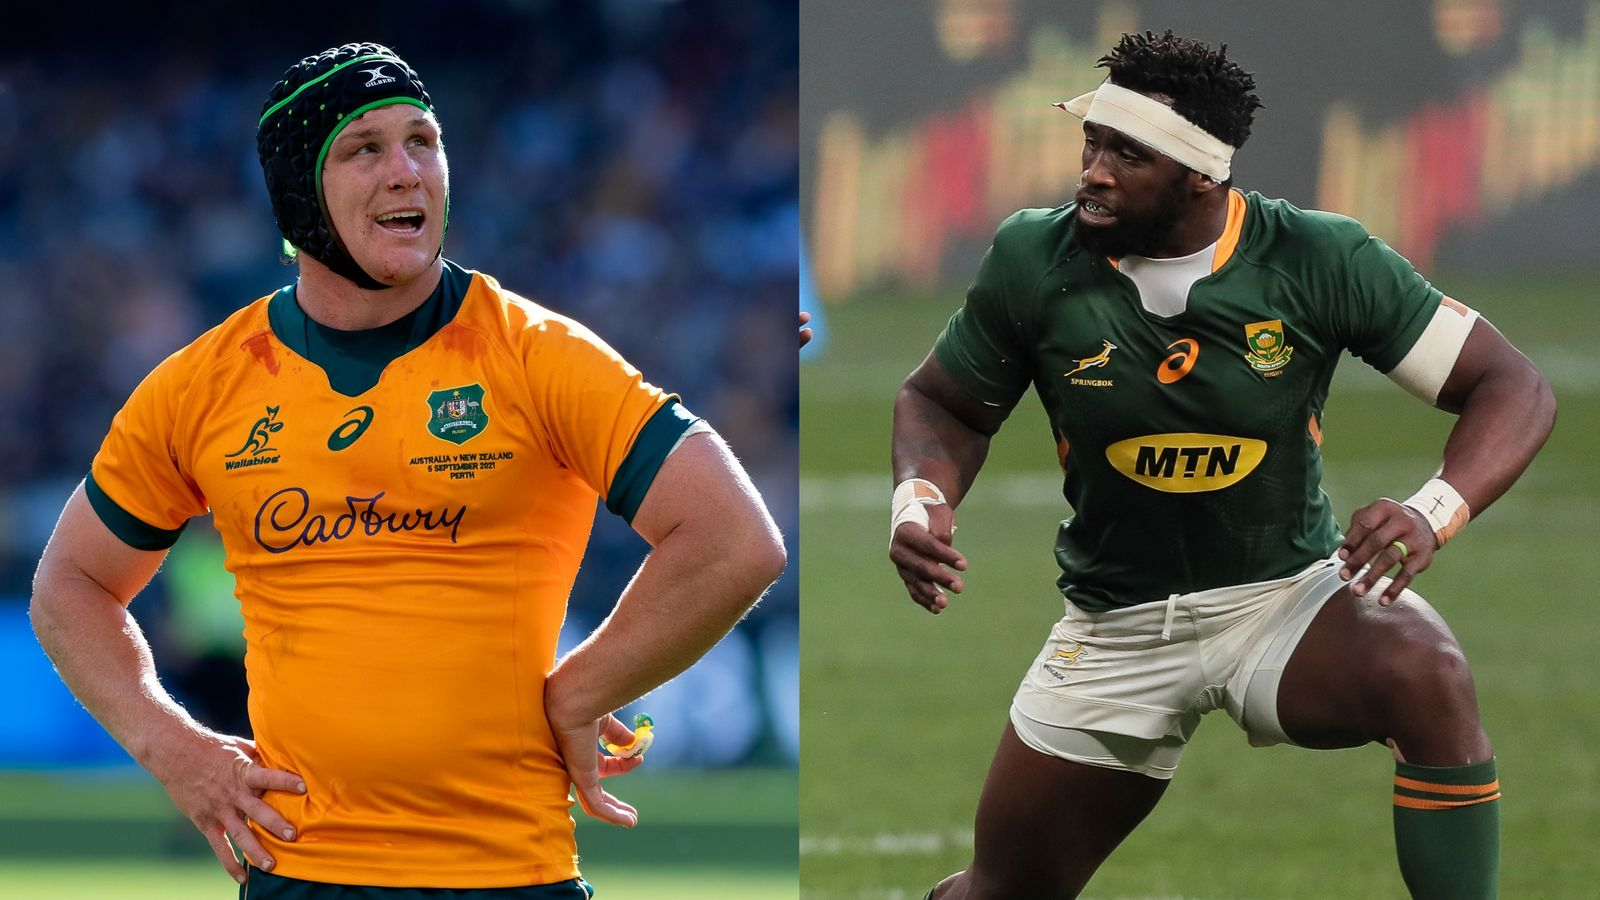 Rugby Championship Australia vs South Africa: Wallabies take on Springboks, live on Sky Sports